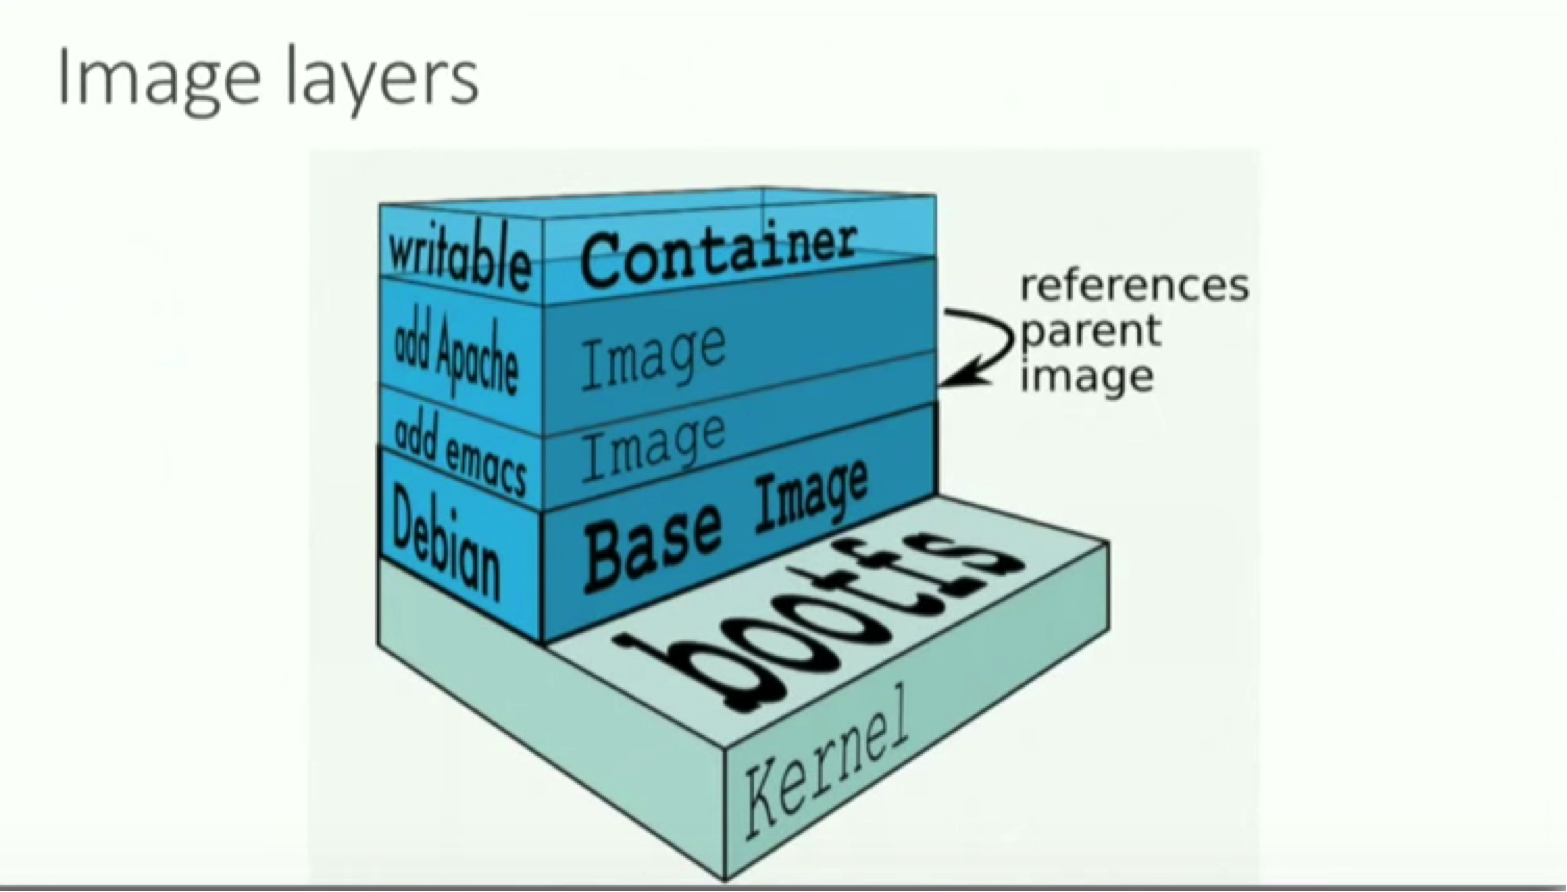 Image Layers in Docker, from the Writable Container to the Kernel